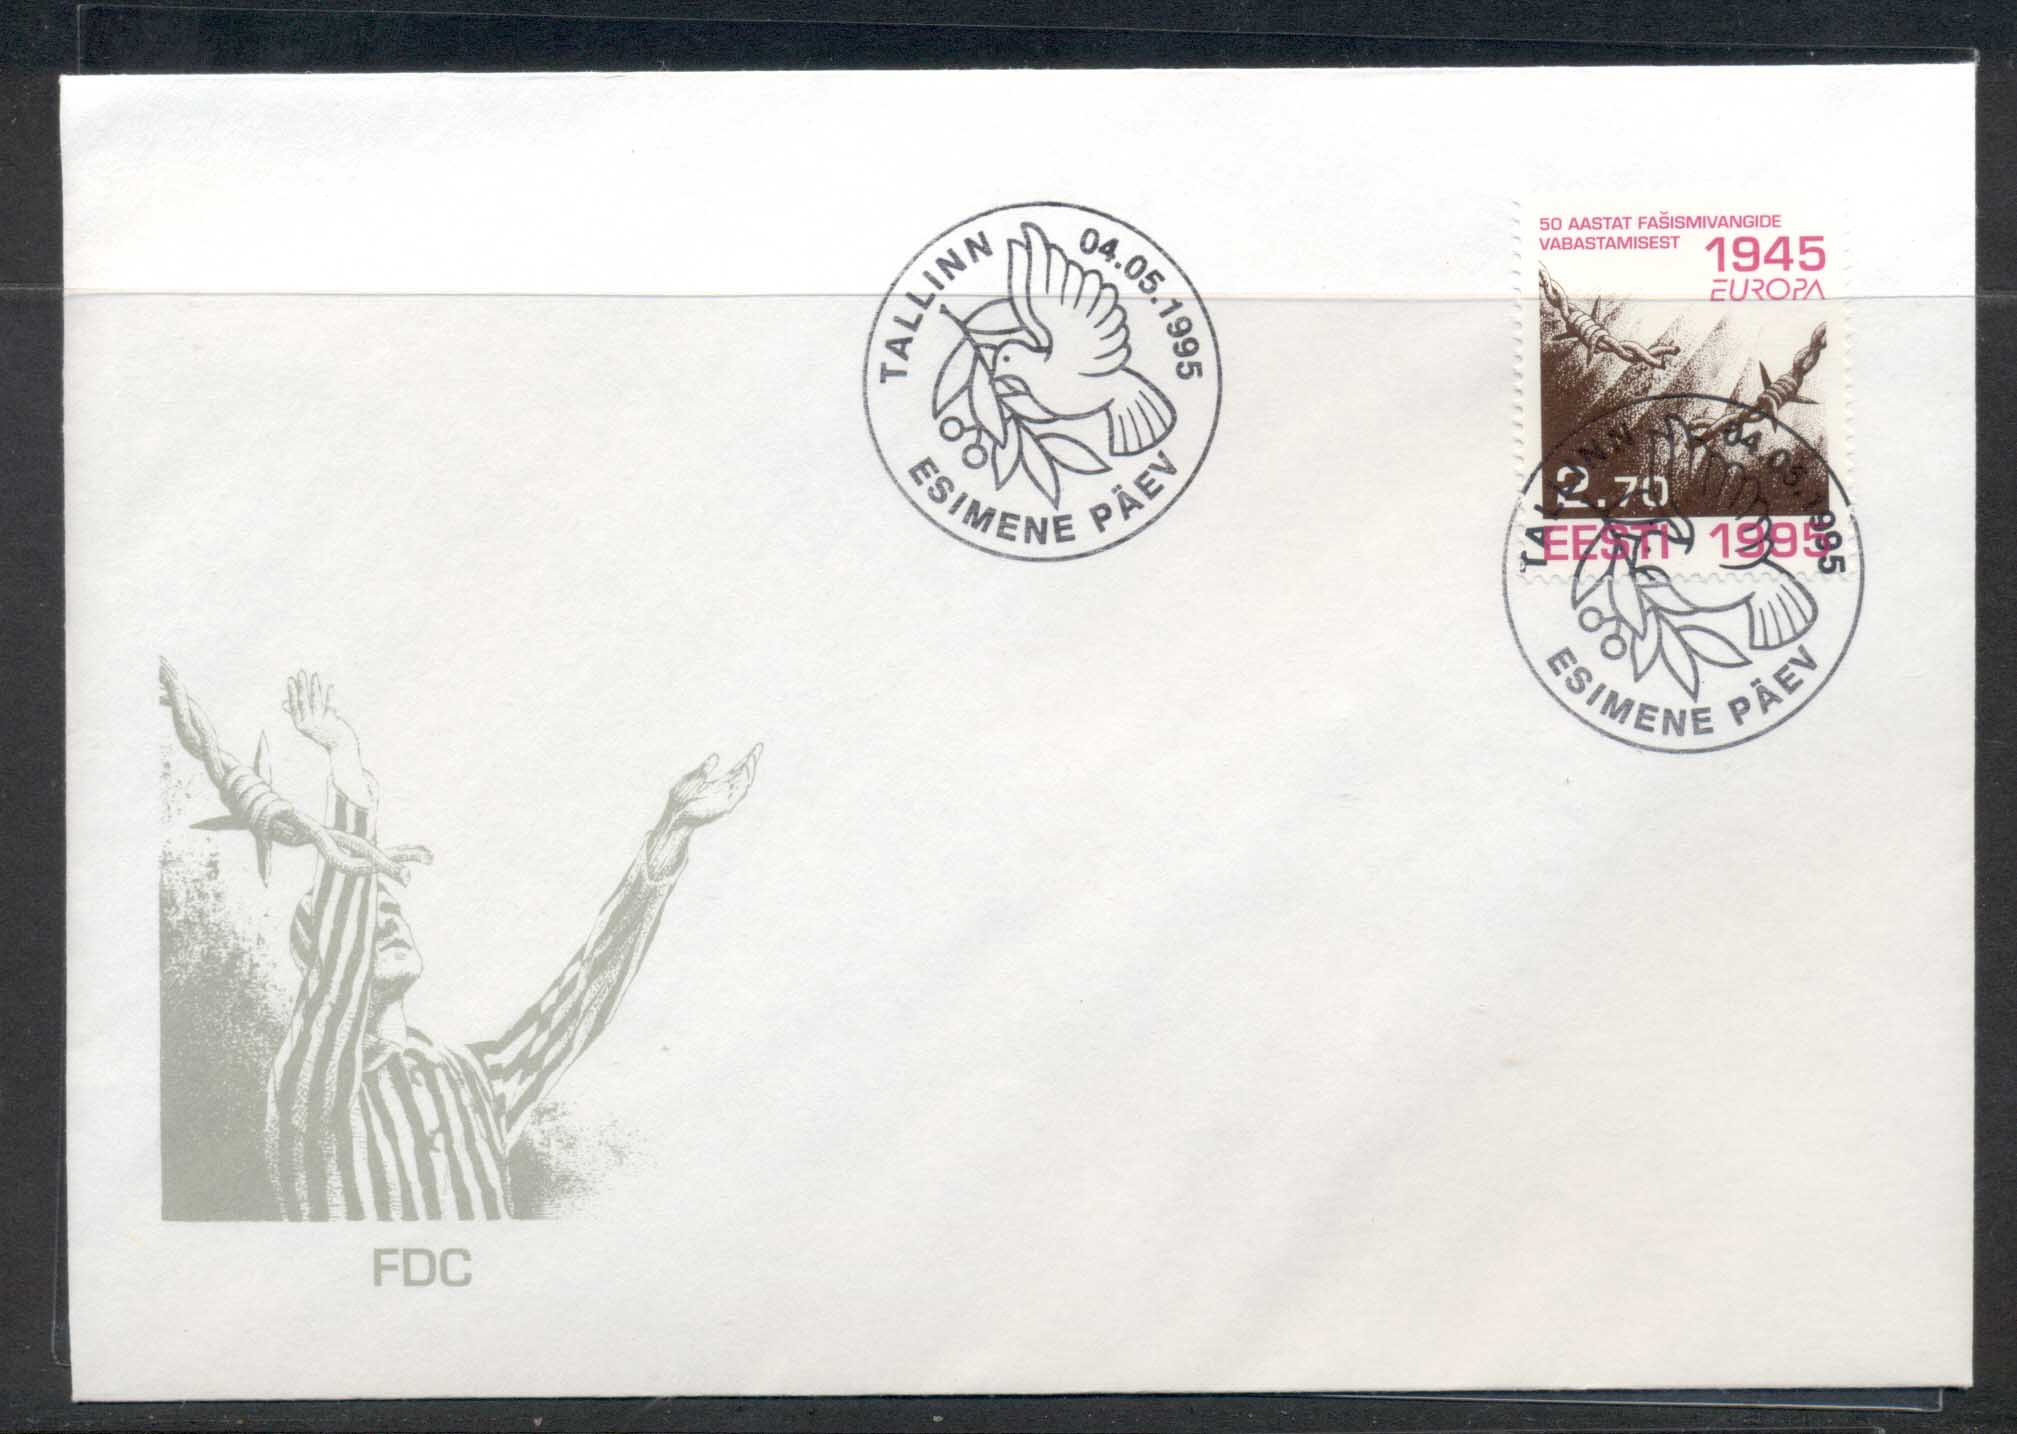 Estonia 1995 Europa Peace & Freedom FDC